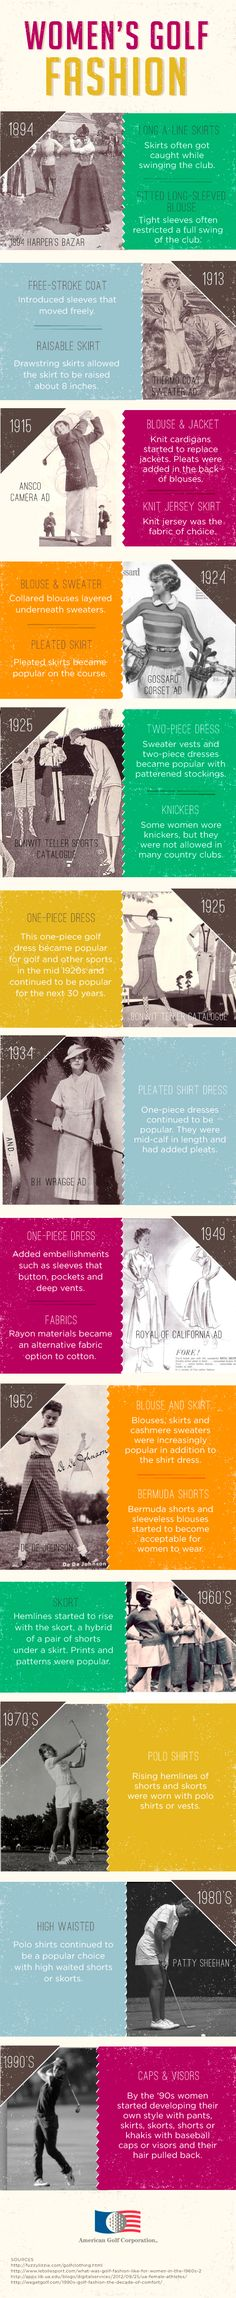 The Lifestyle & Fashion of Womens Golf. I should take note of this for when I start golfing.